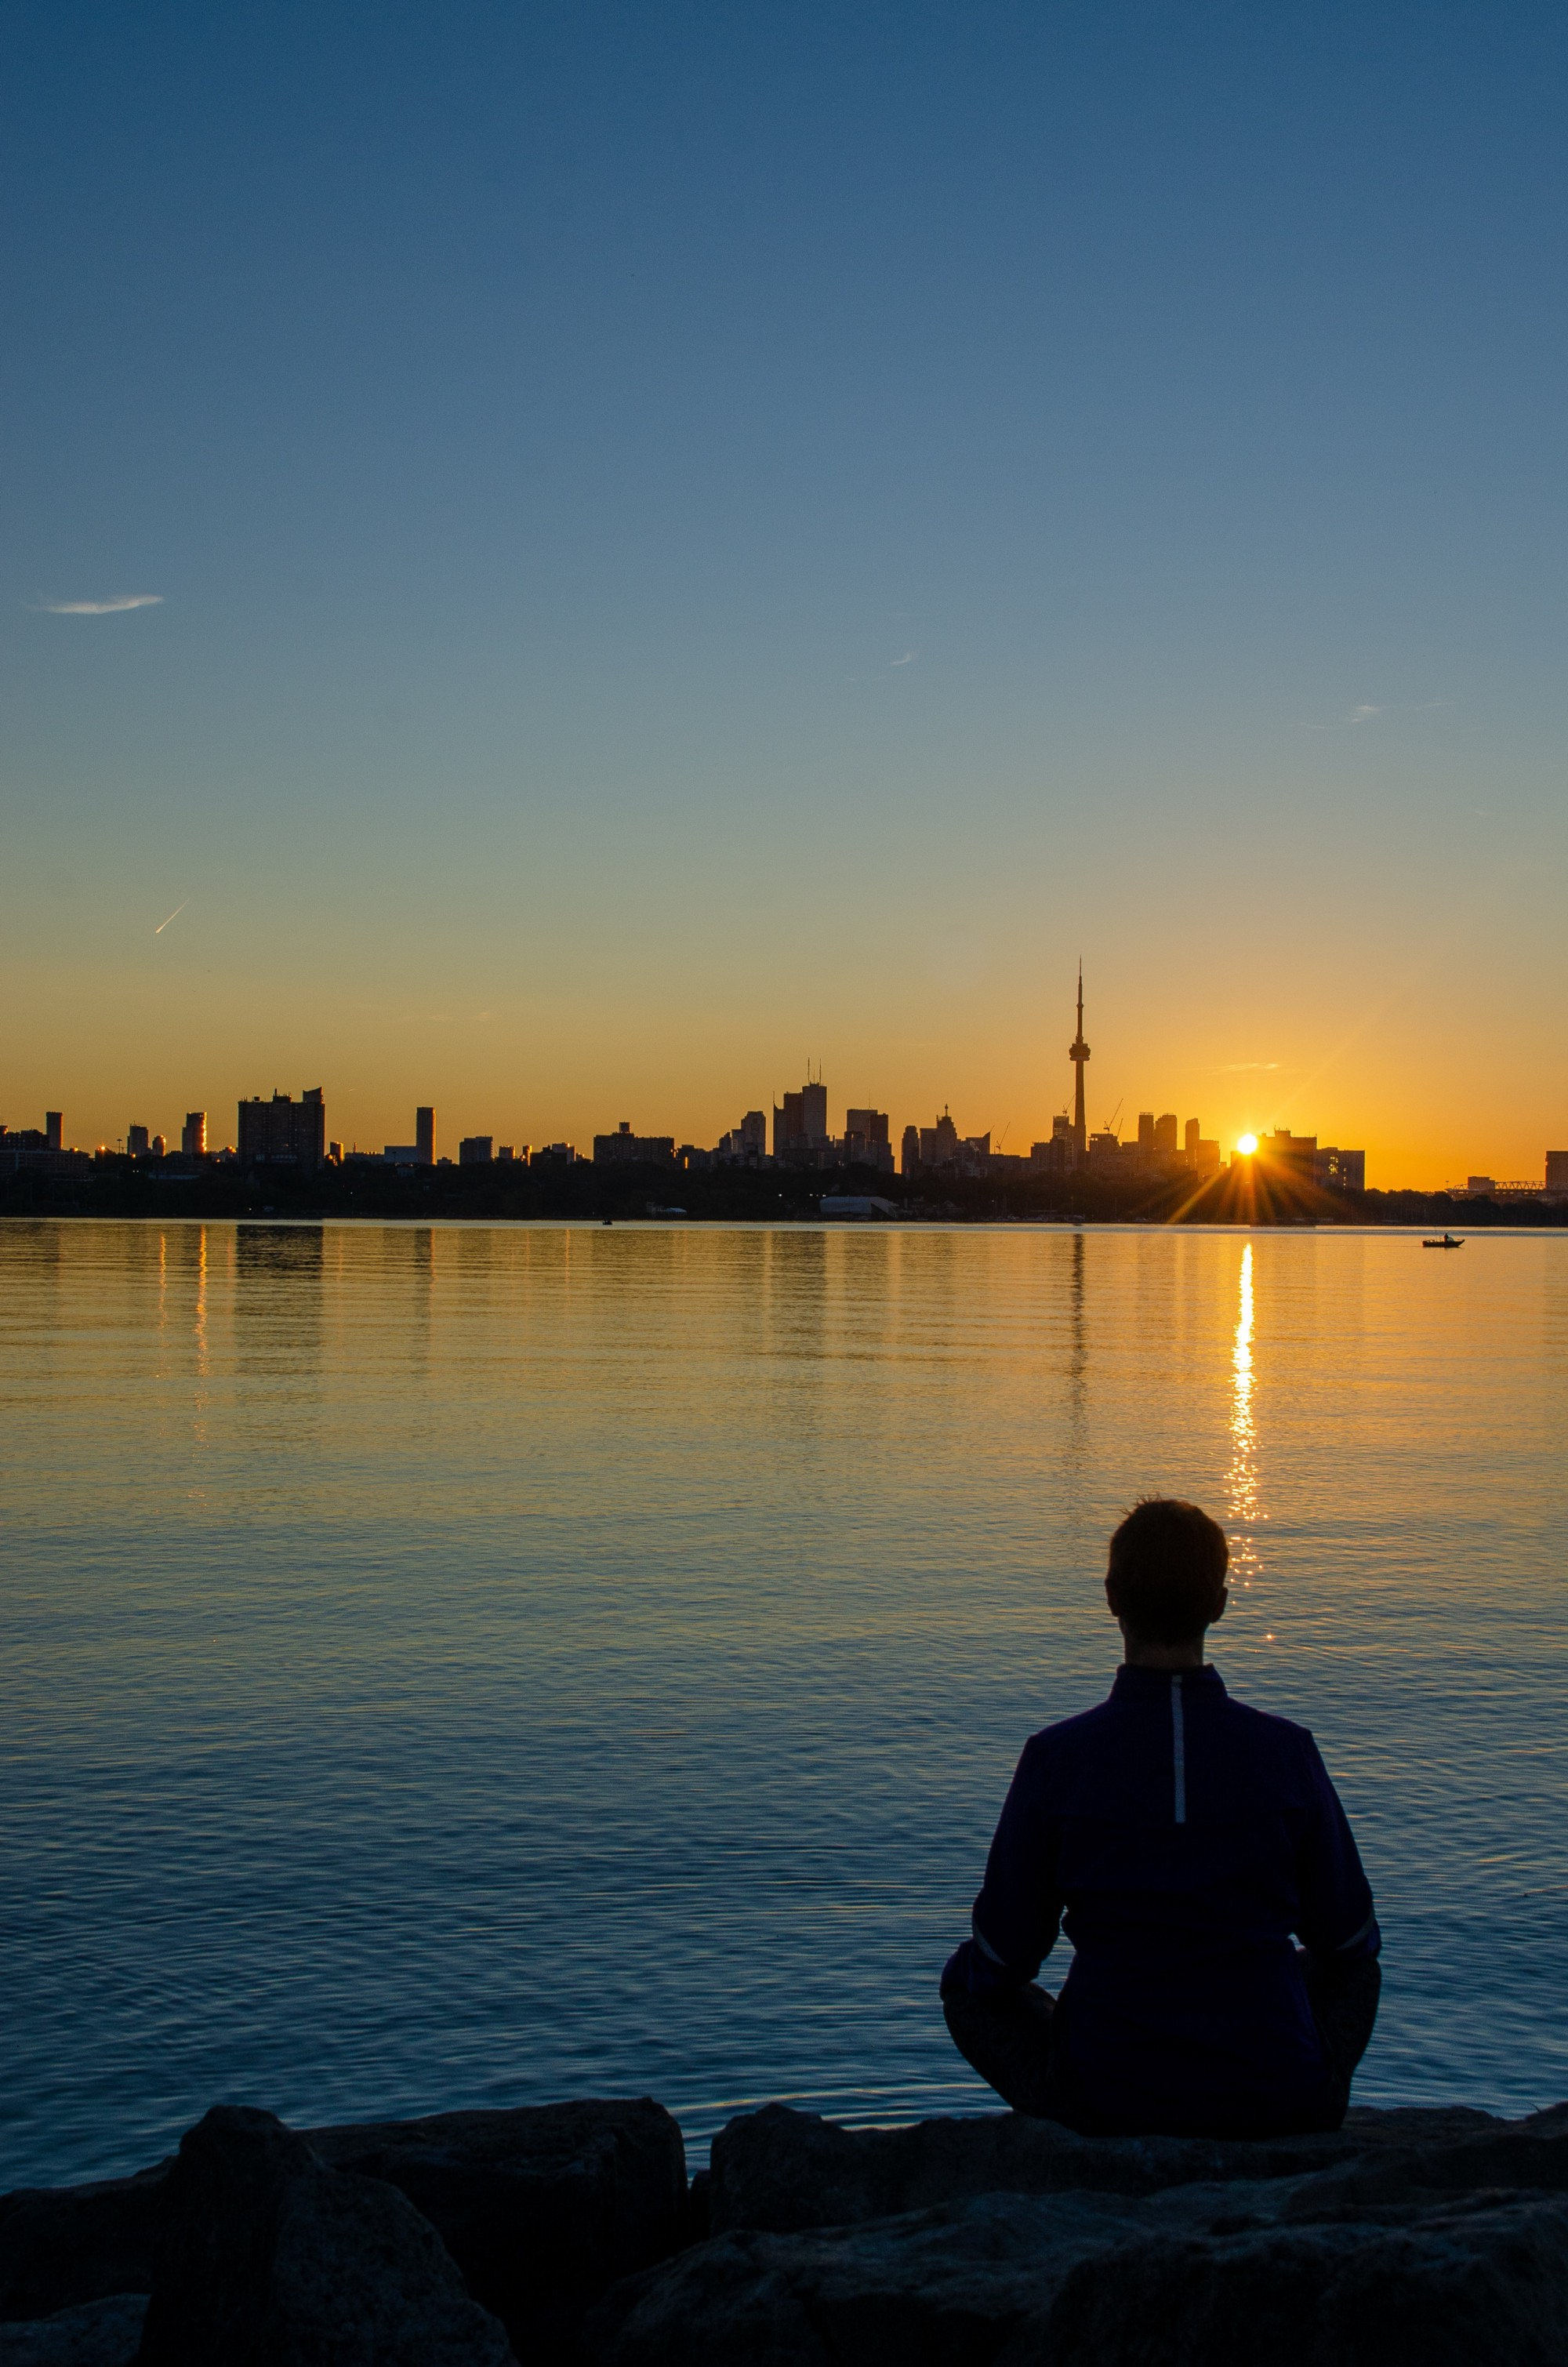 Man meditating next to water with city skyline and sunset in the distance